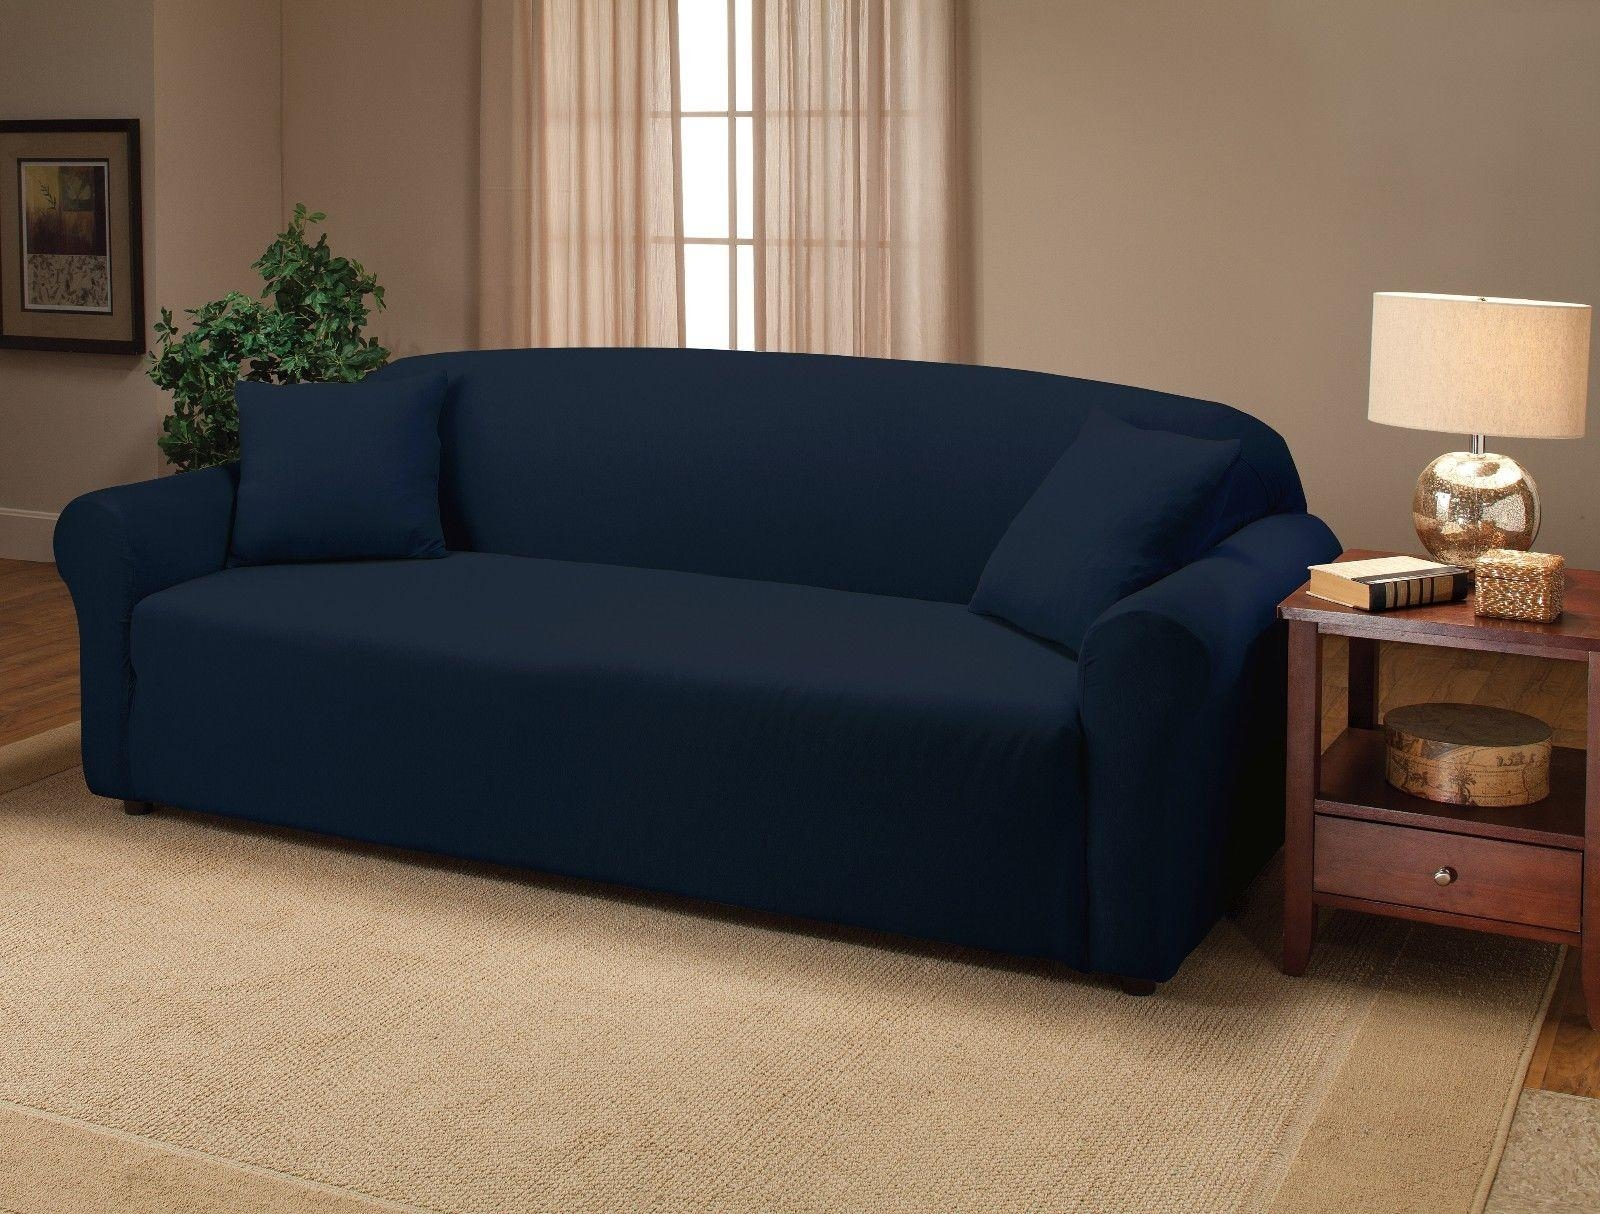 Navy Blue Sofa Slipcovers | Tehranmix Decoration Regarding Navy Blue Slipcovers (Image 11 of 20)